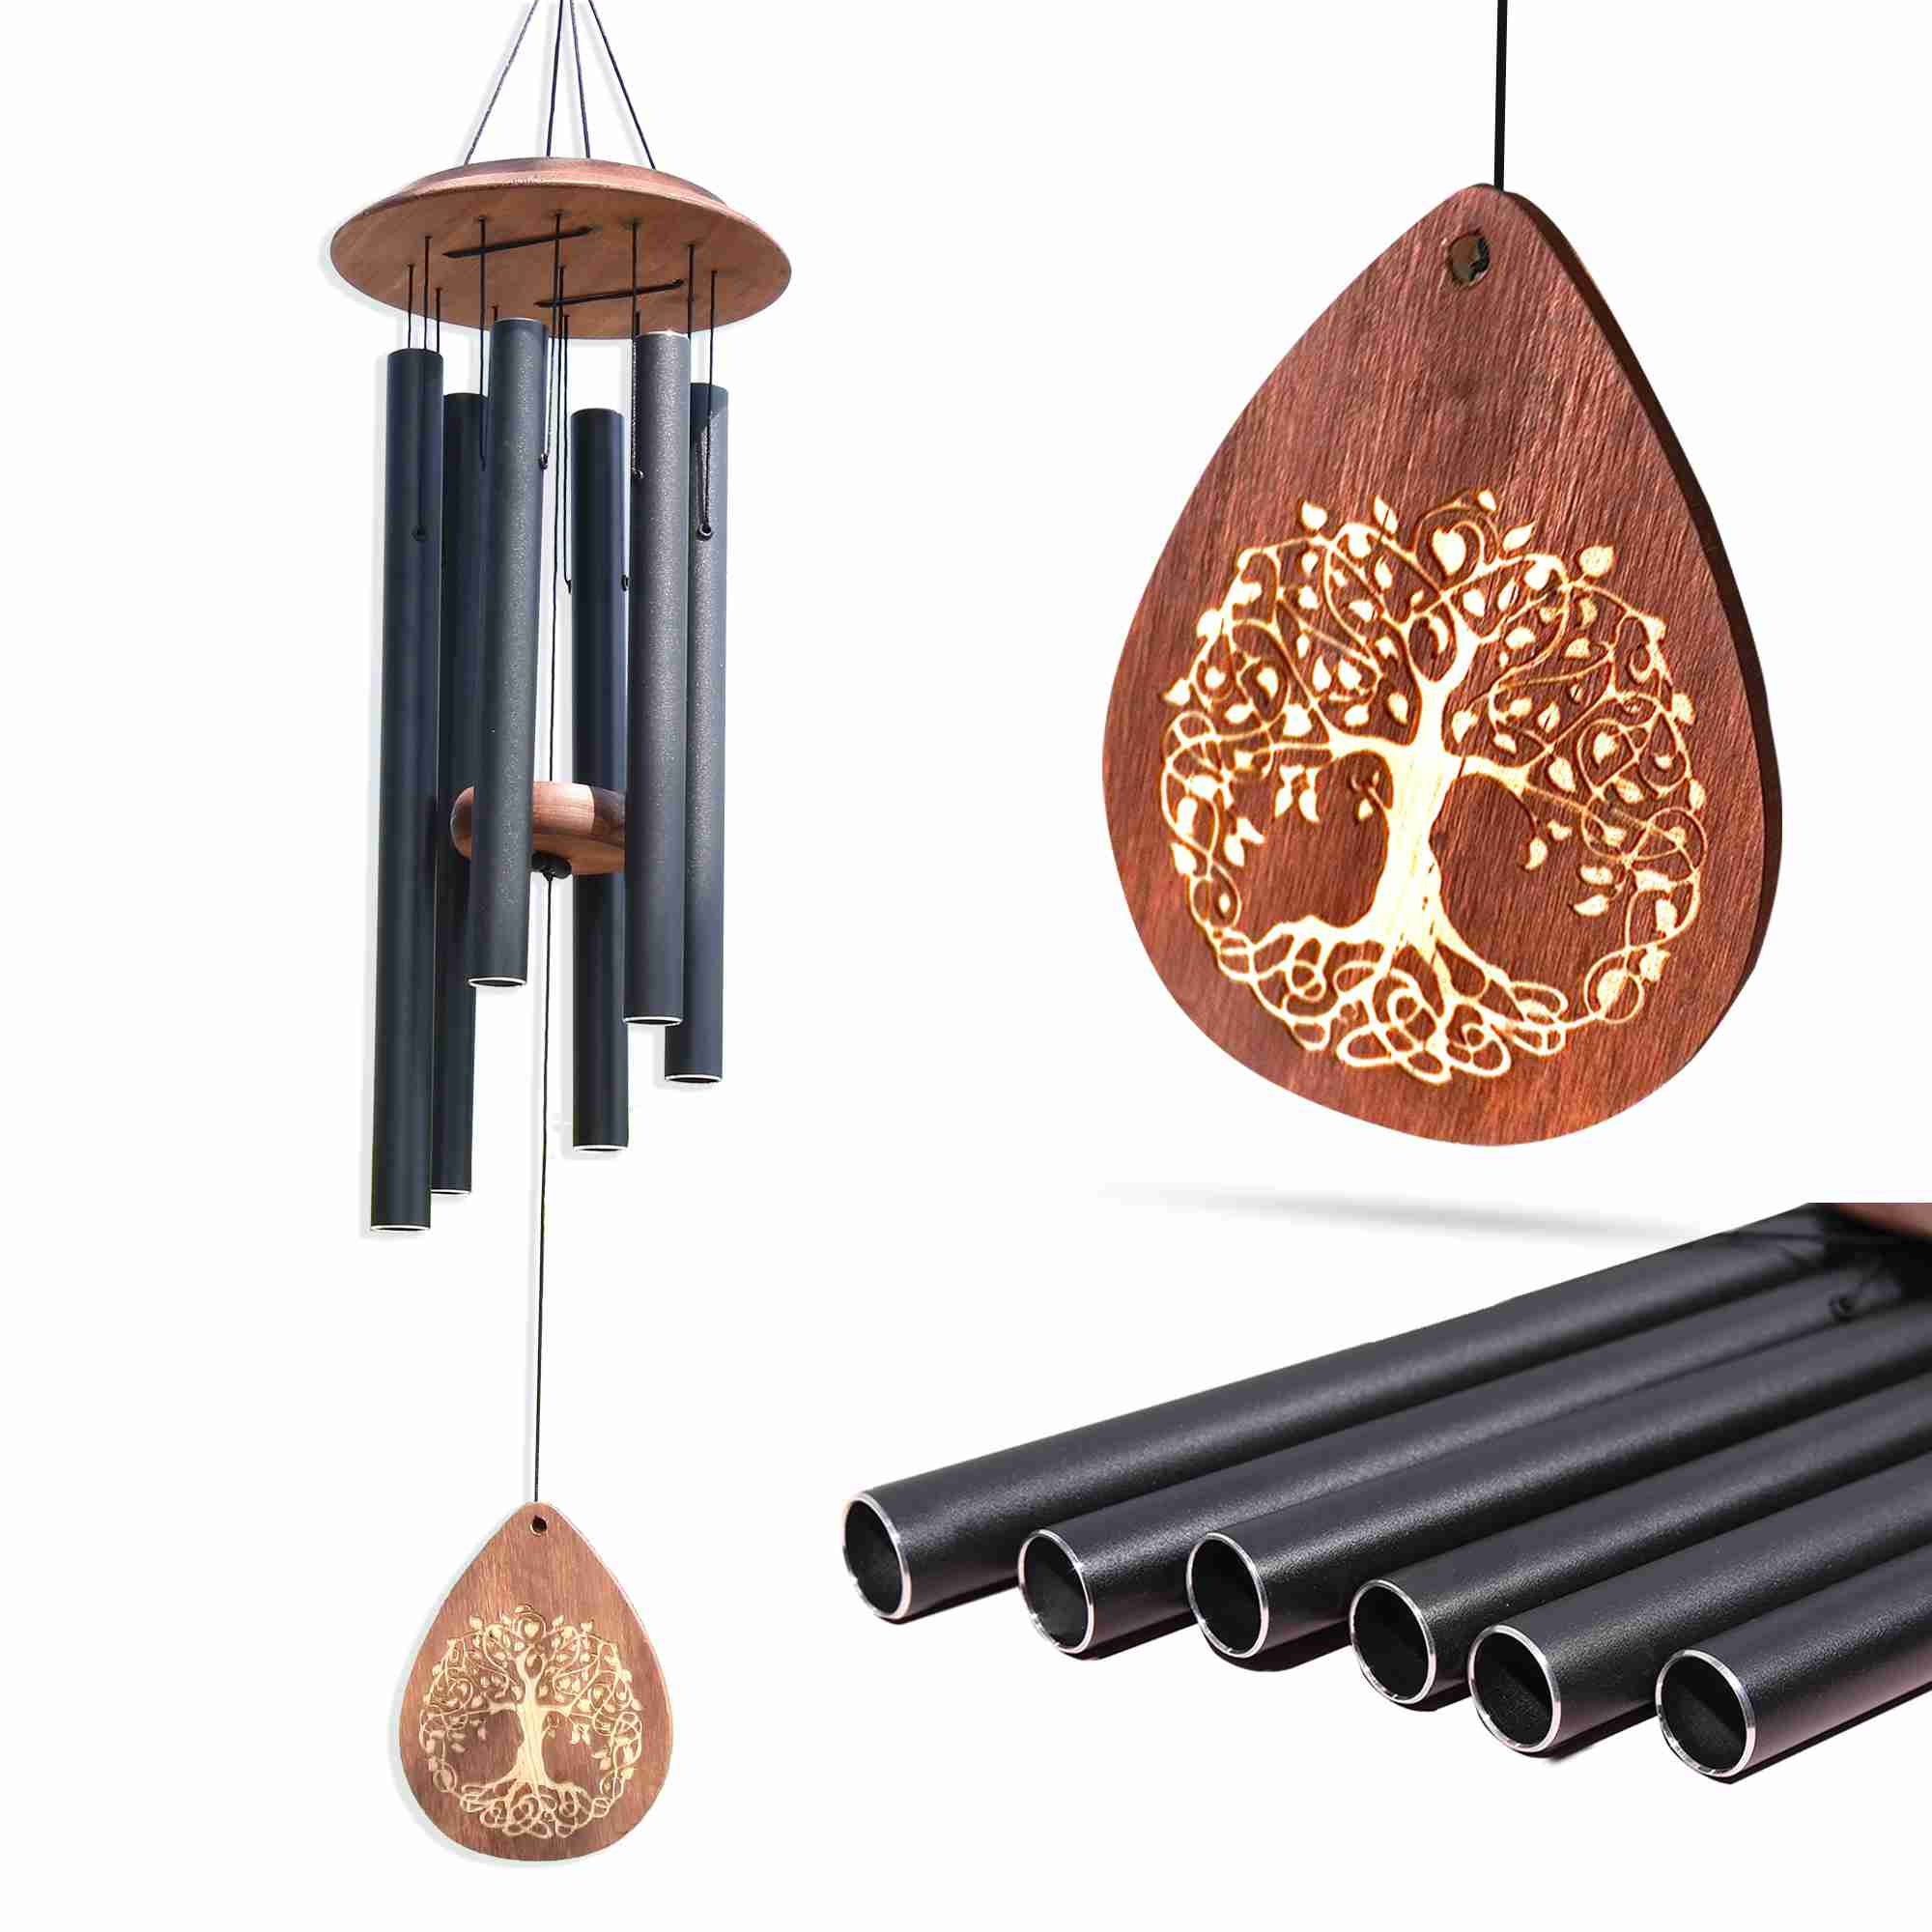 memorial-wind-chimes-sympathy-gift with cash back rebate